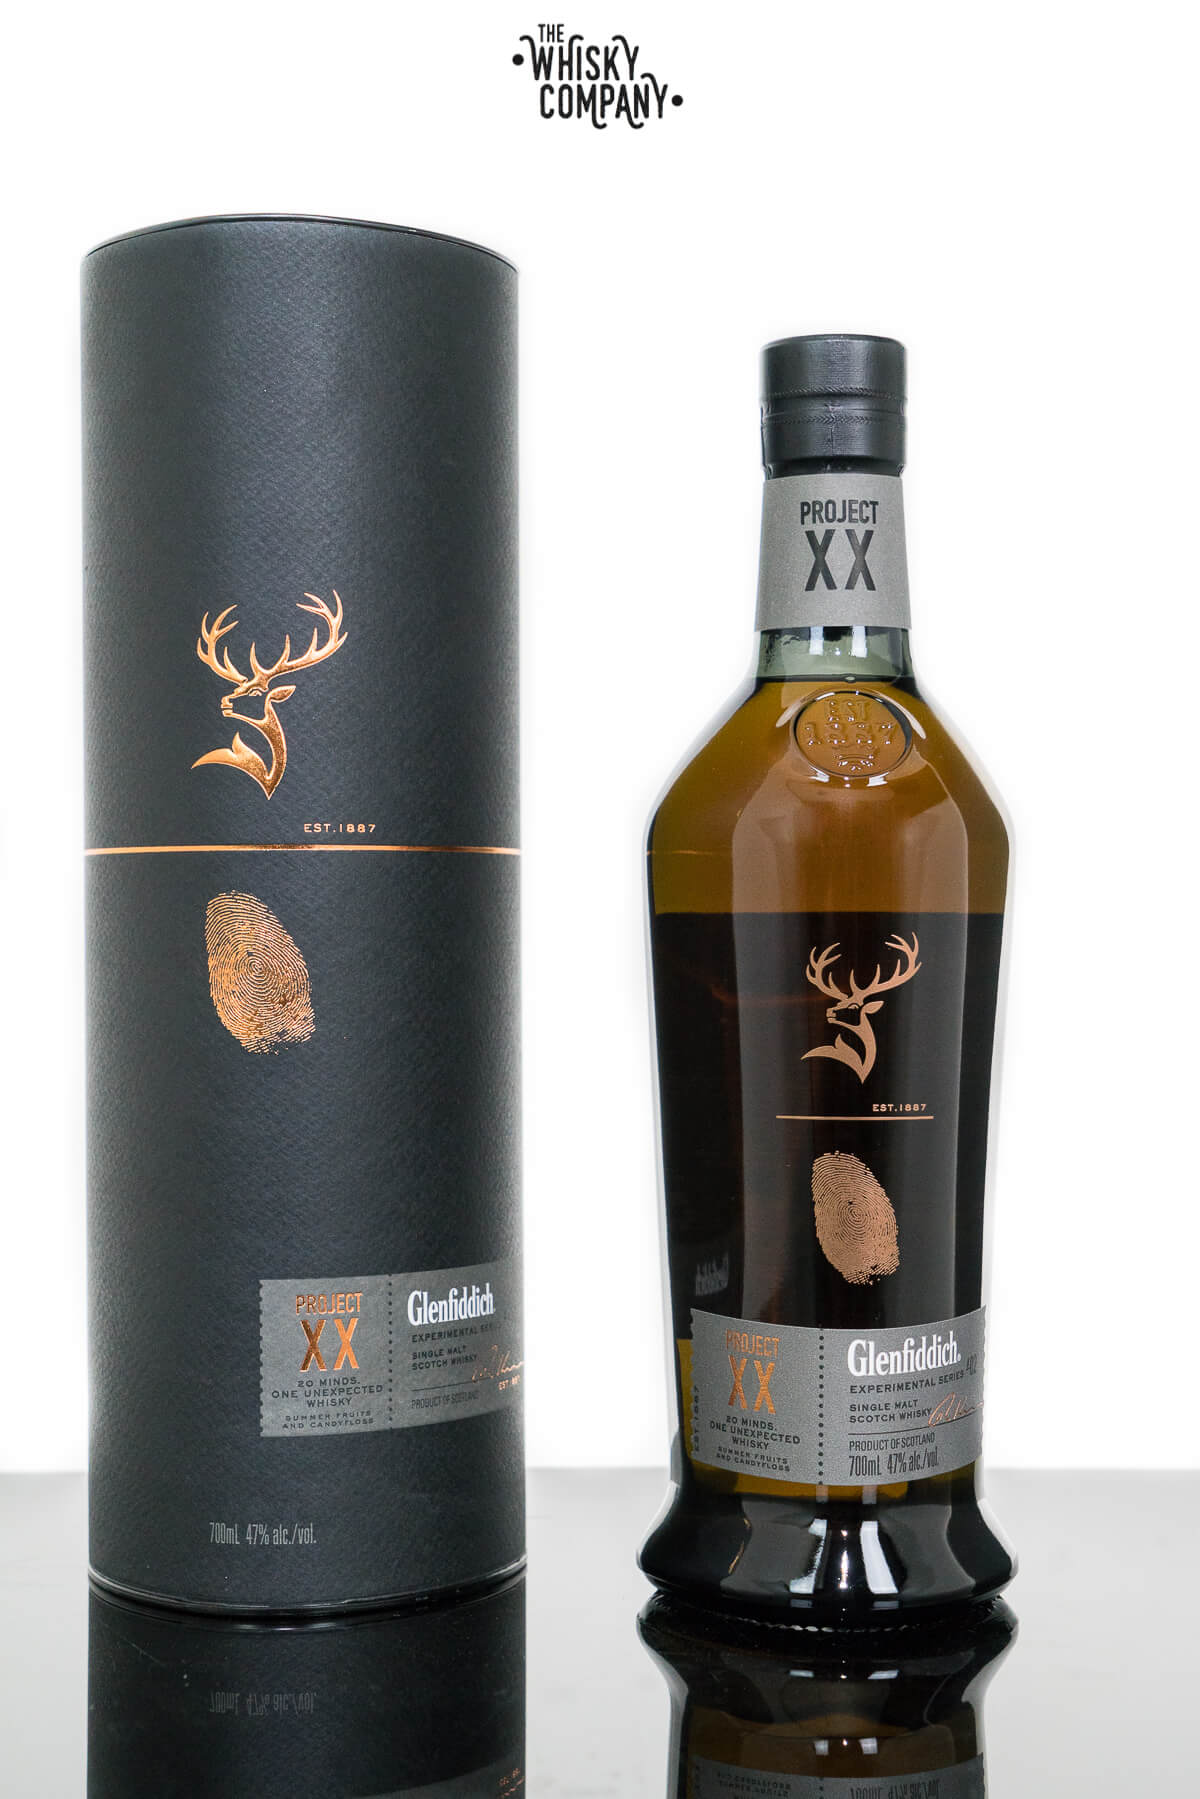 Glenfiddich Project XX Speyside Single Malt Scotch Whisky (700ml)